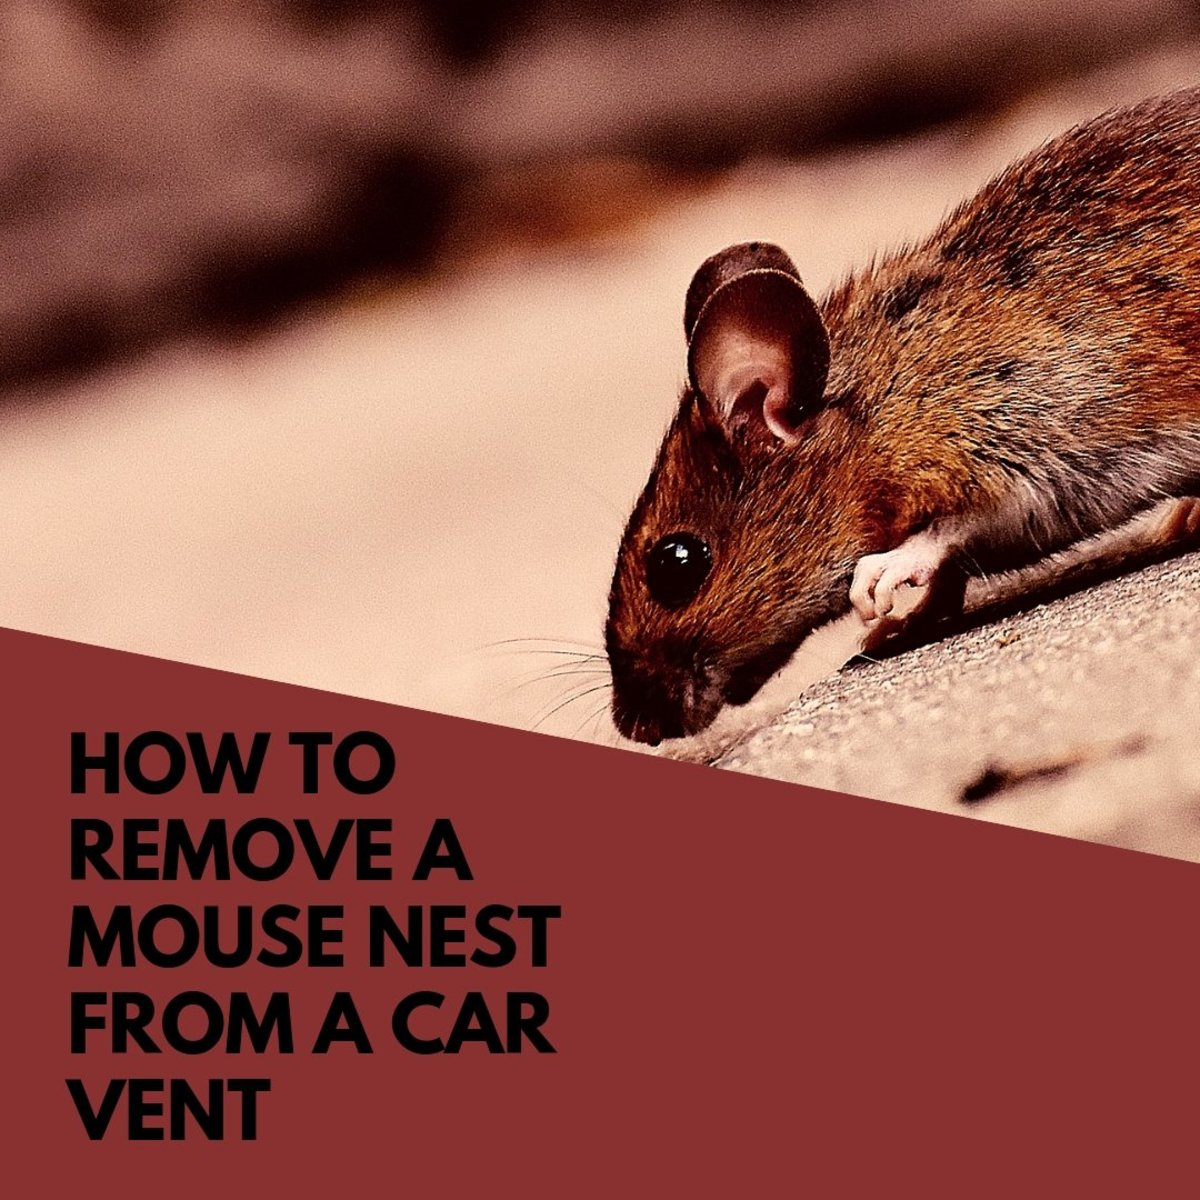 remove-mouse-nest-from-car